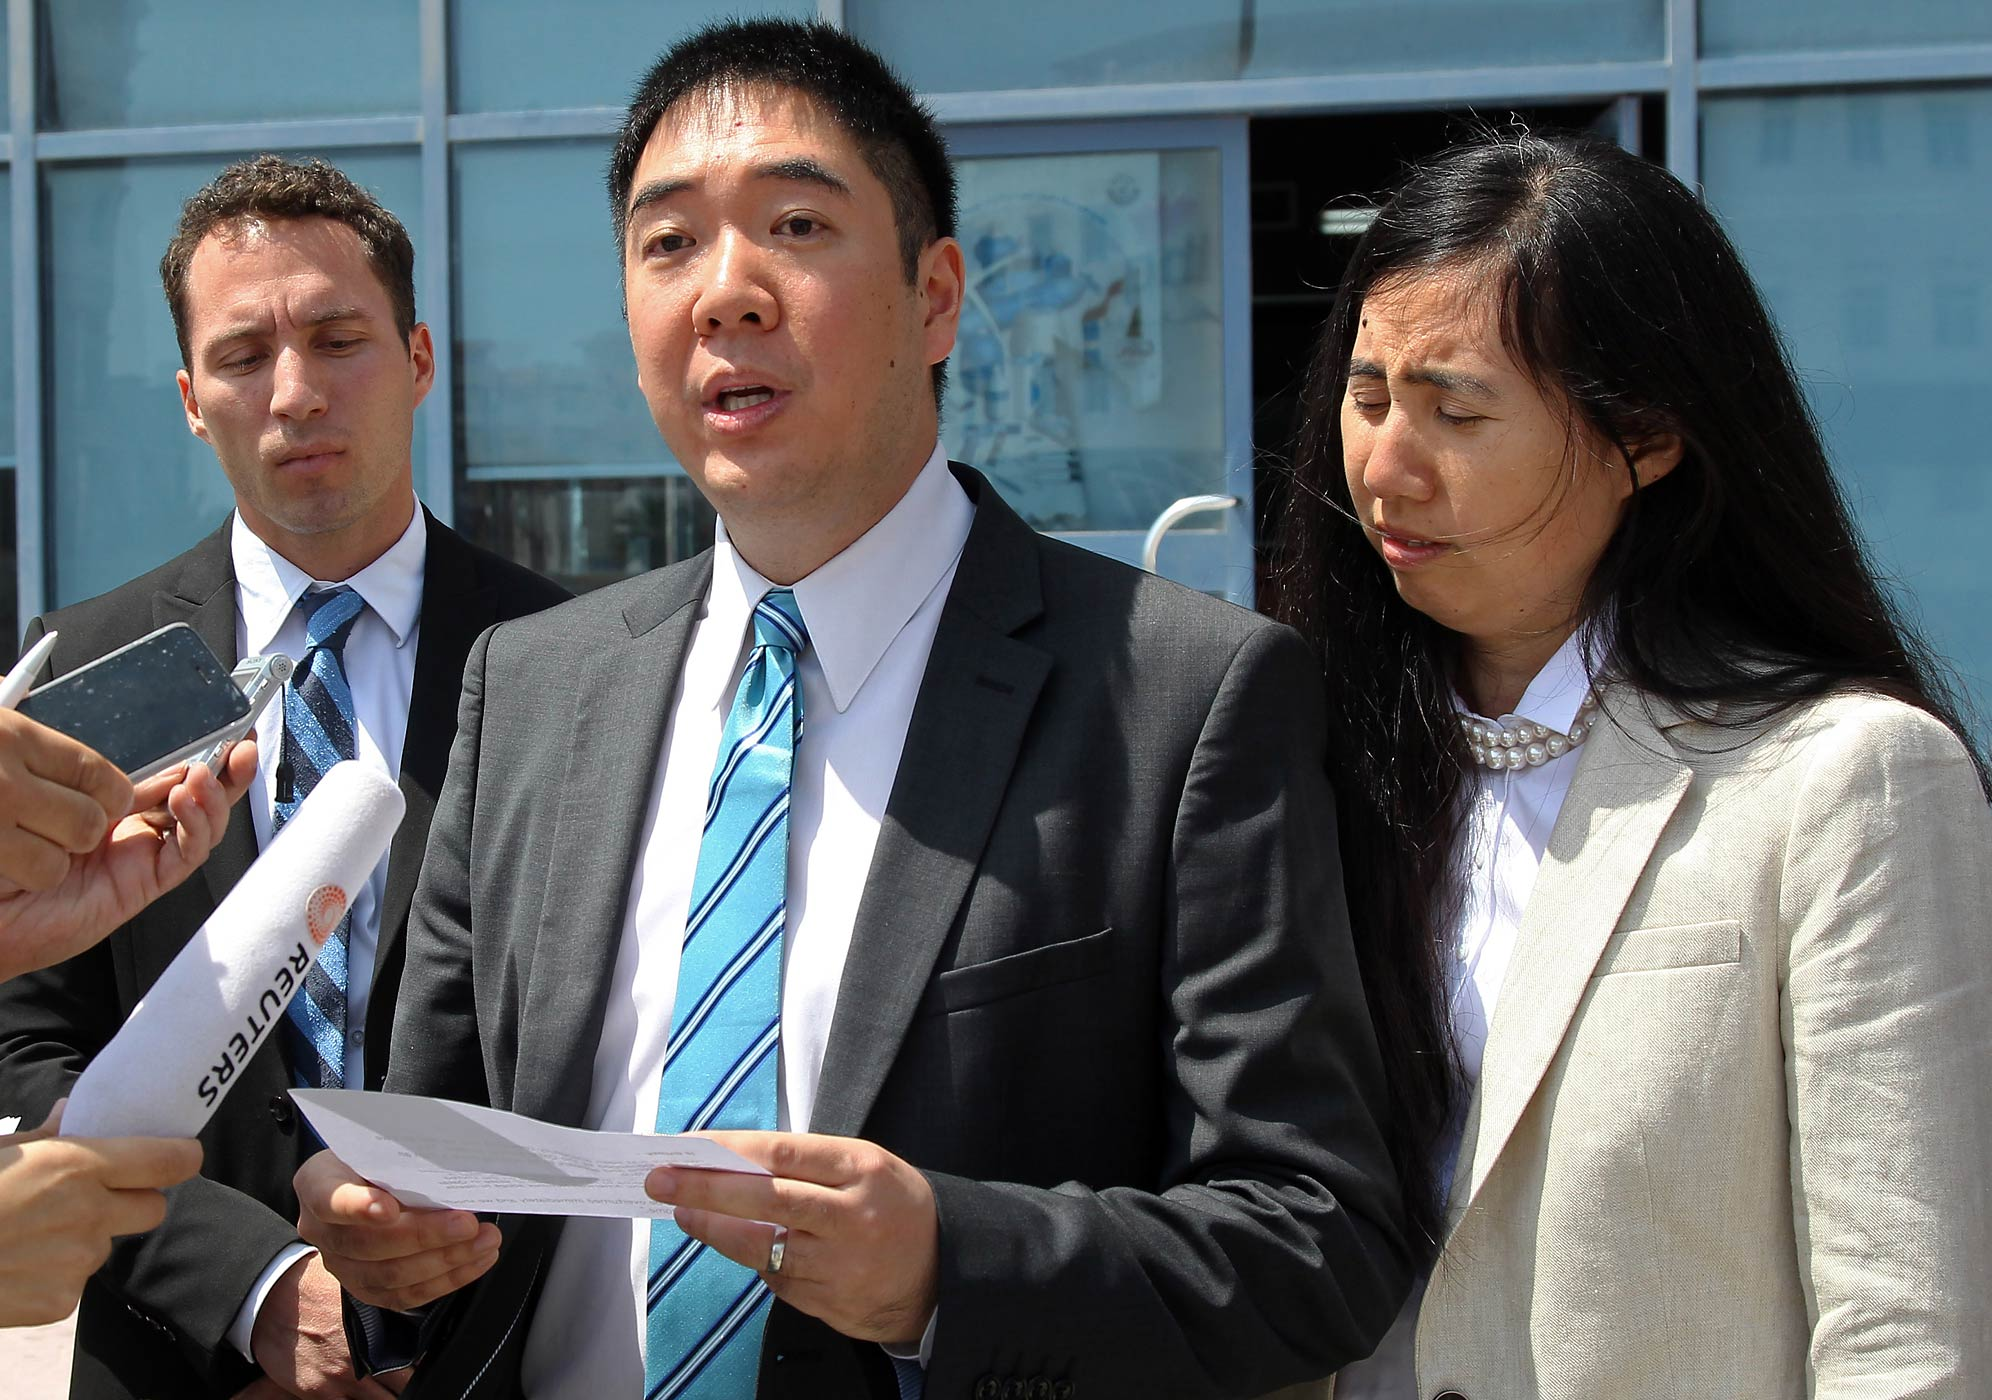 Matthew, left, and Grace Huang, an American couple charged with starving to death their 8-year-old adopted daughter, speak to the press outside the a courthouse before their trial in Doha, Qatar, Thursday, March 27, 2014.